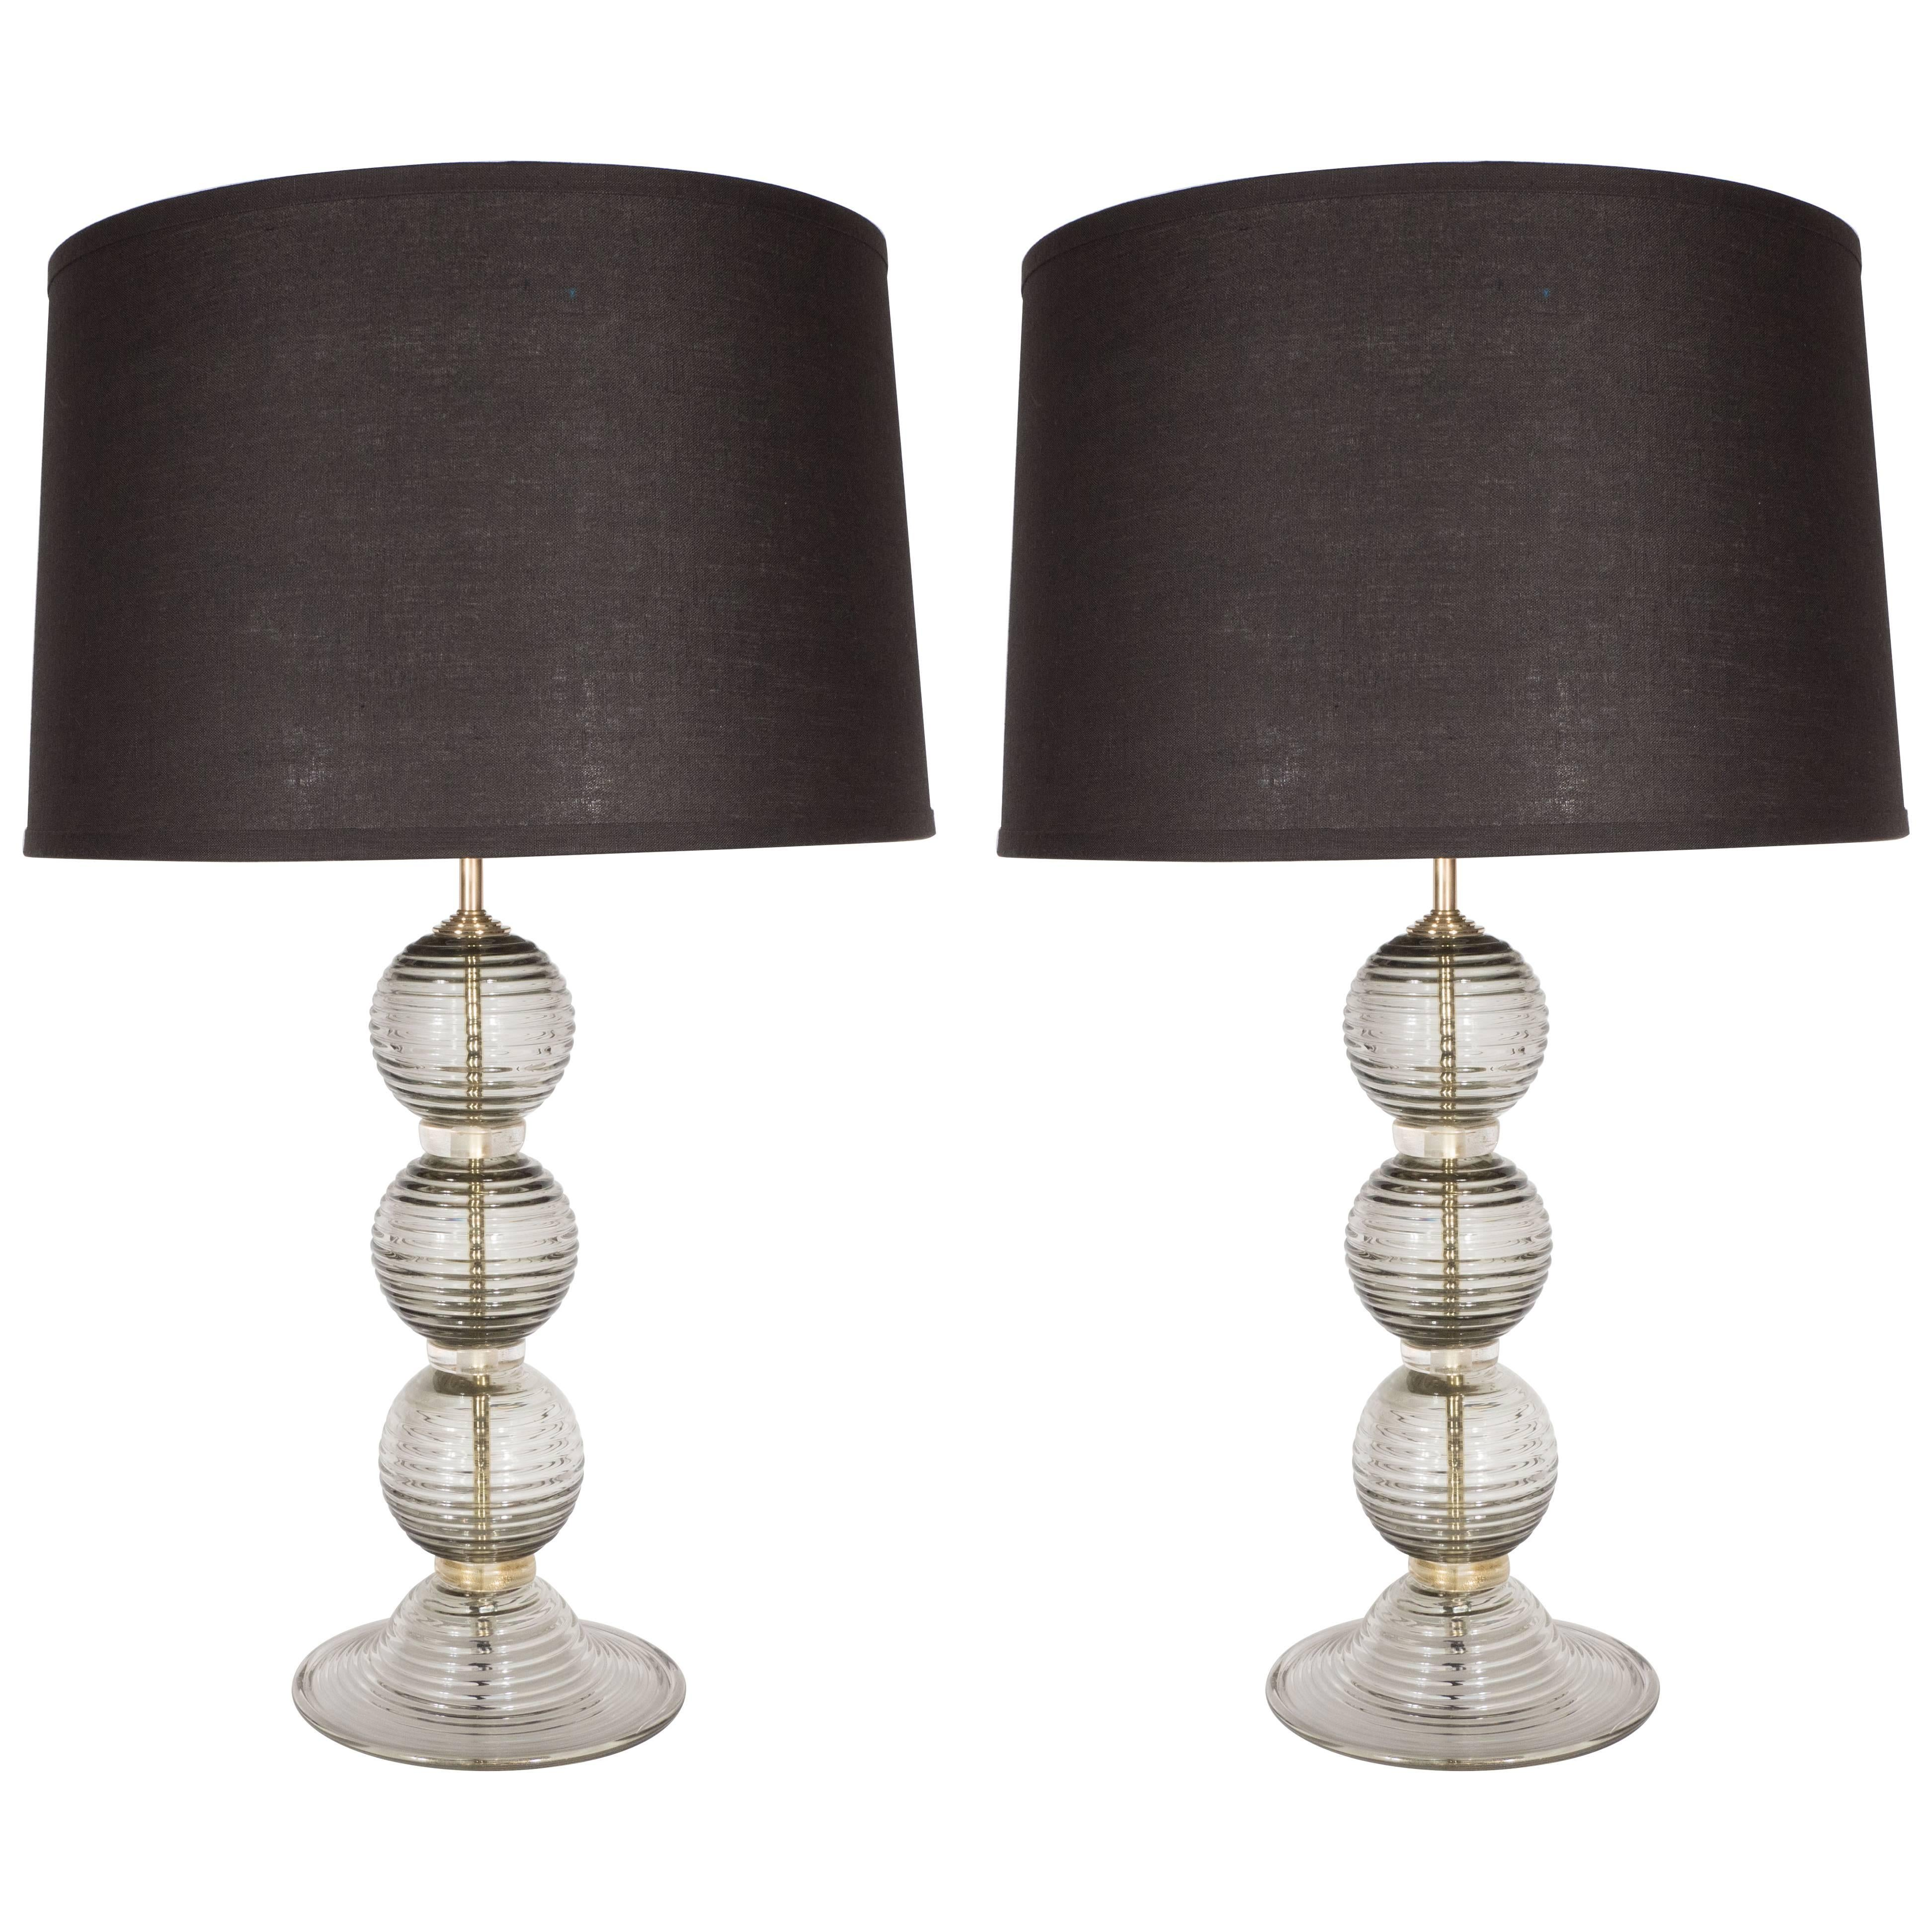 Pair of Handblown Murano Ribbed & Smoked Glass Table Lamps with Brass Fittings